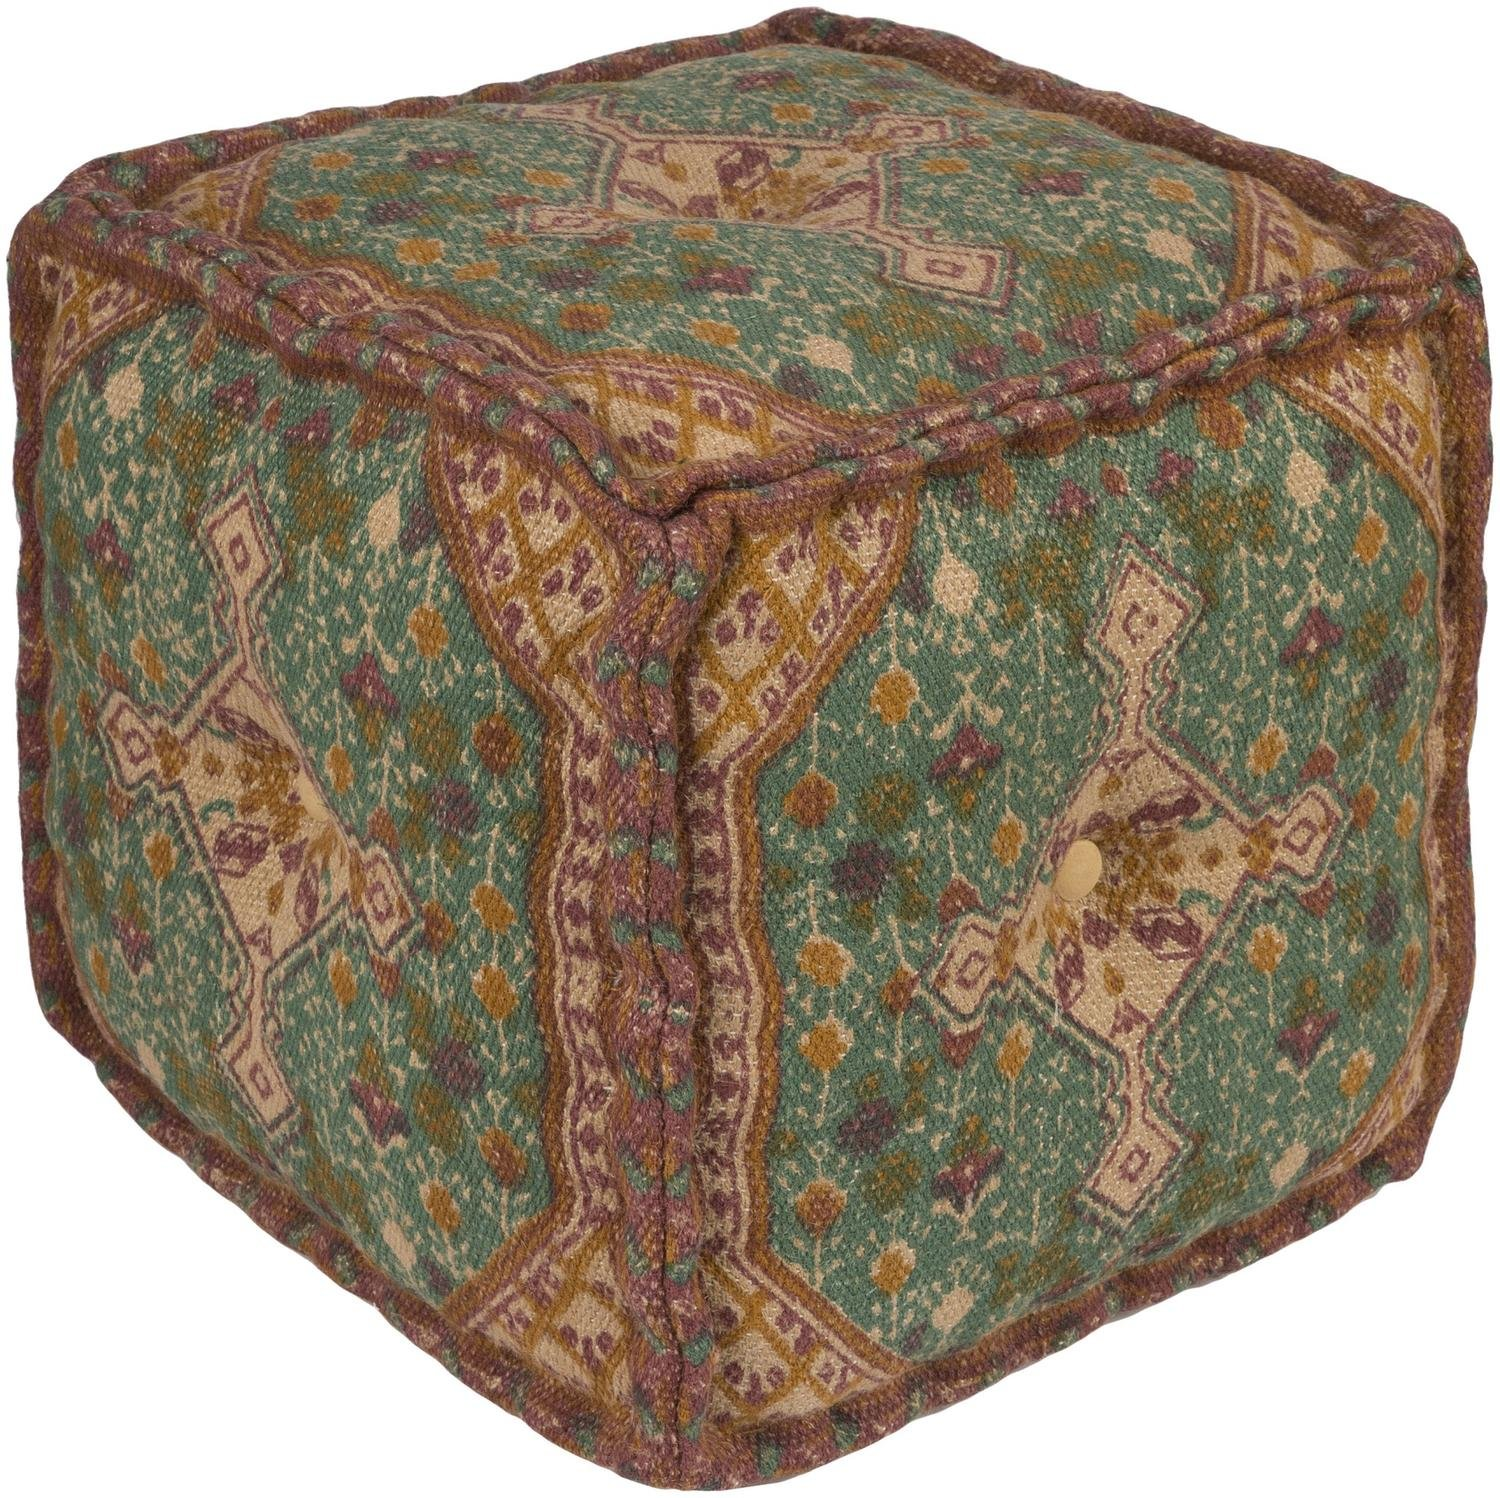 18'' Brown and Green Traditional Designed Woven Square Indoor Pouf Ottoman